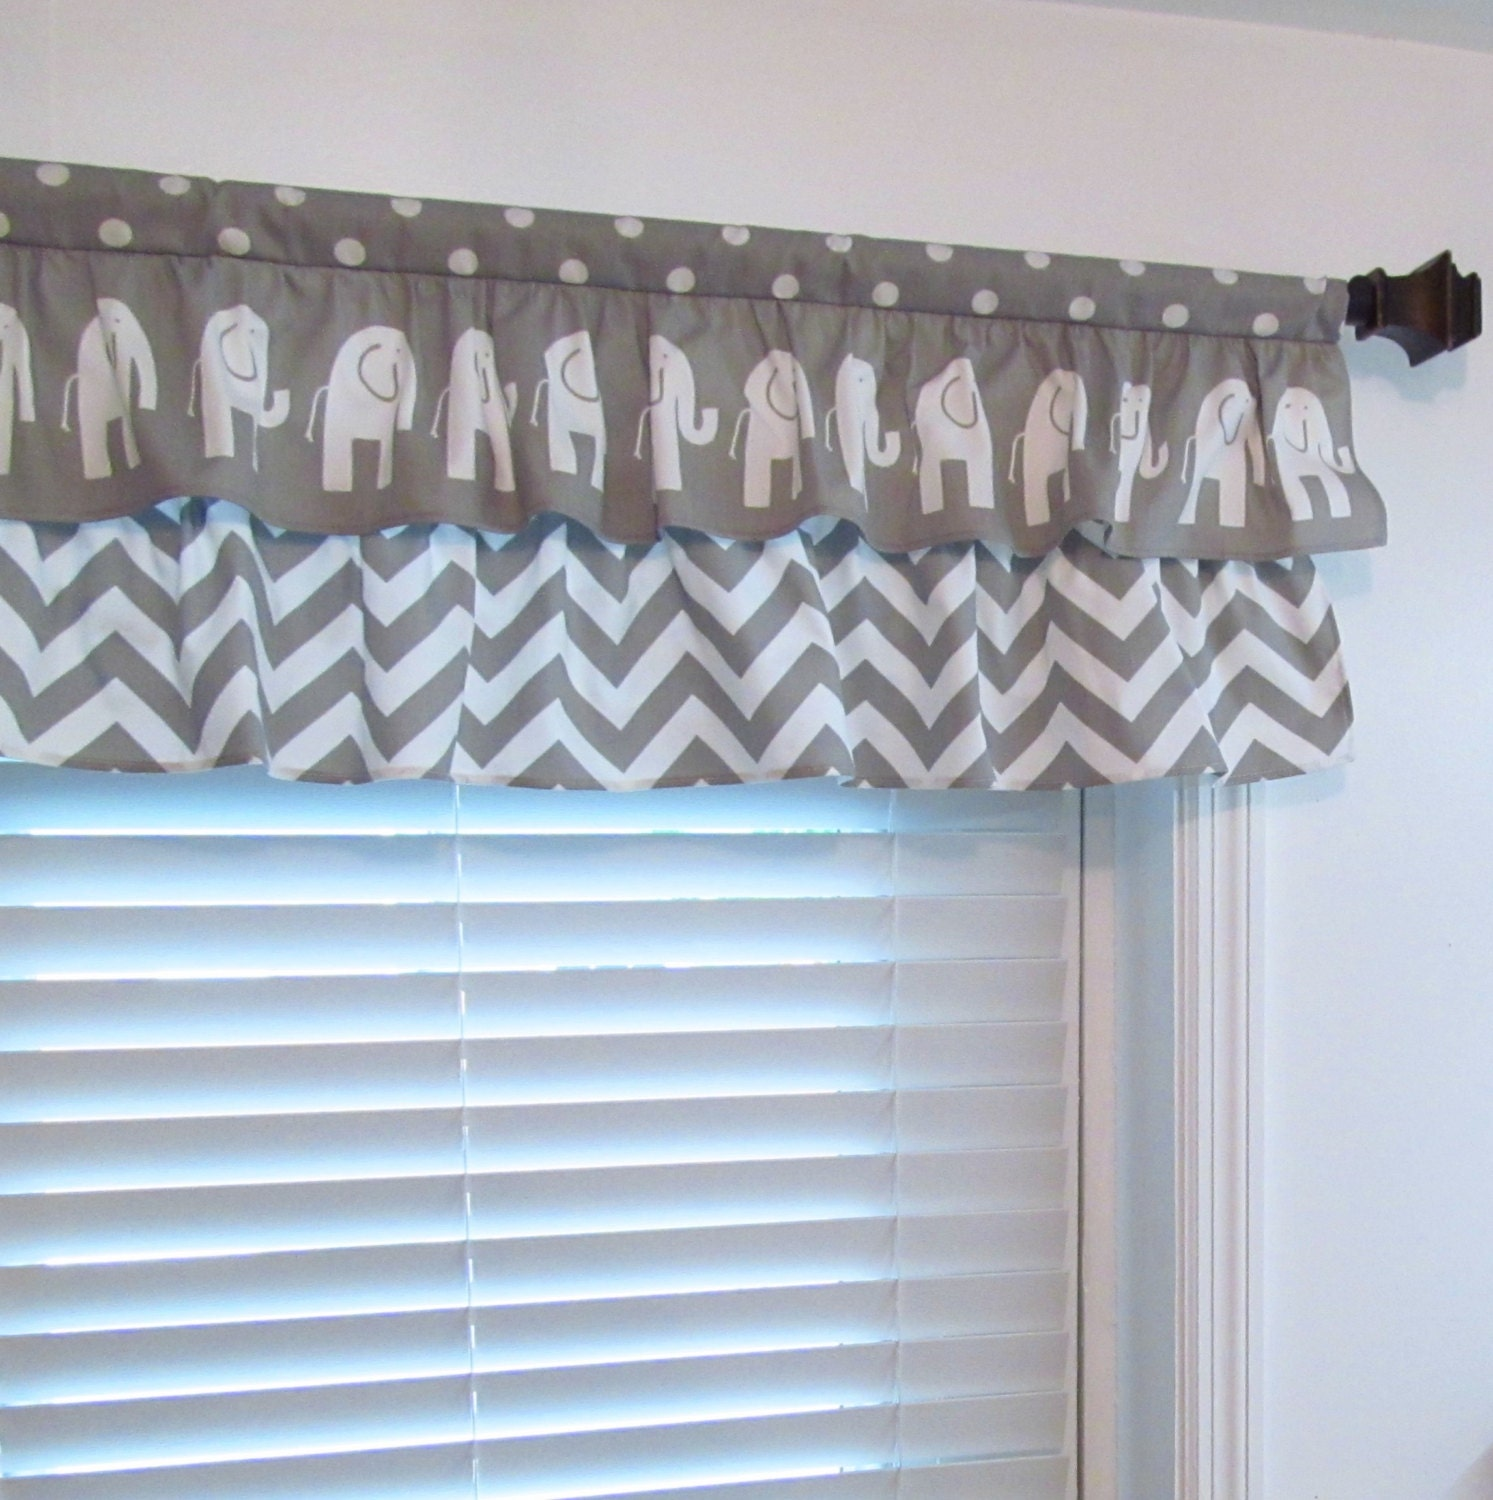 Pink and white polka dot curtains -  Curtain Elephant Chevron Polka Dot Gray Valance Zoom